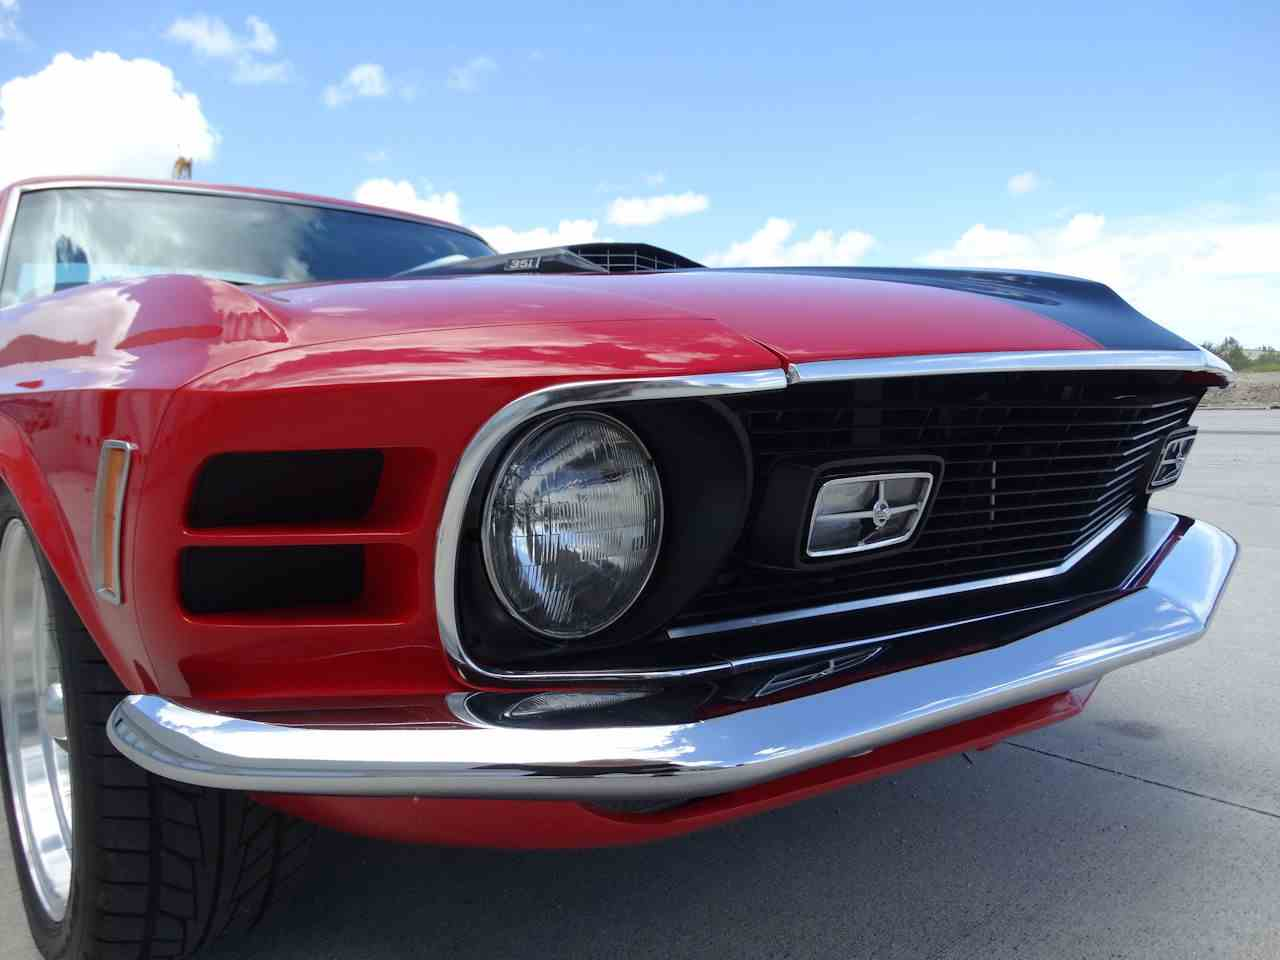 Large Picture of 1970 Ford Mustang located in Coral Springs Florida - $60,000.00 Offered by Gateway Classic Cars - Fort Lauderdale - LG4A